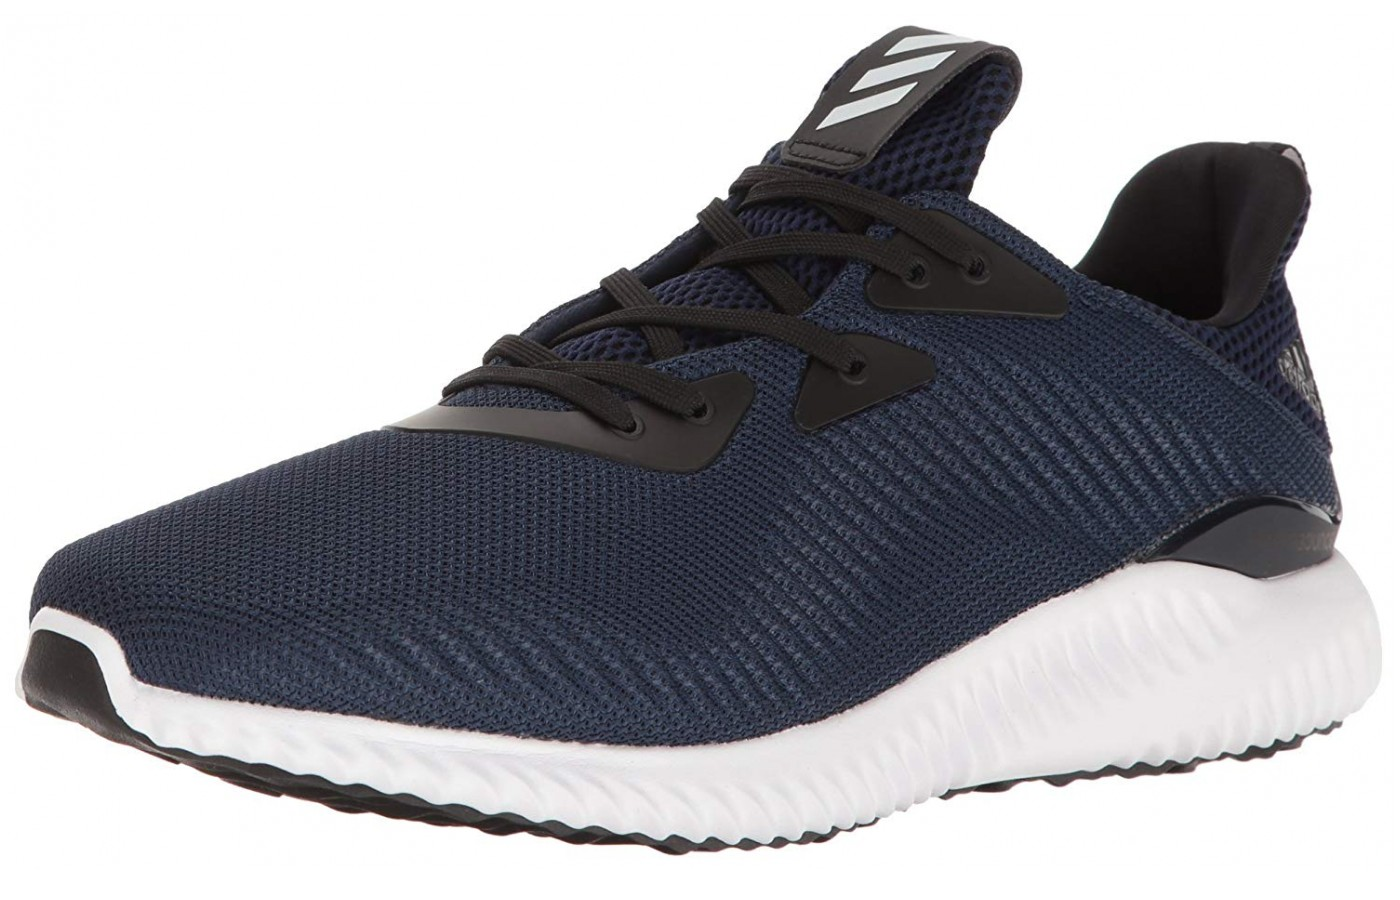 Adidas Alphabounce boost System alpha breathable netted running shoes